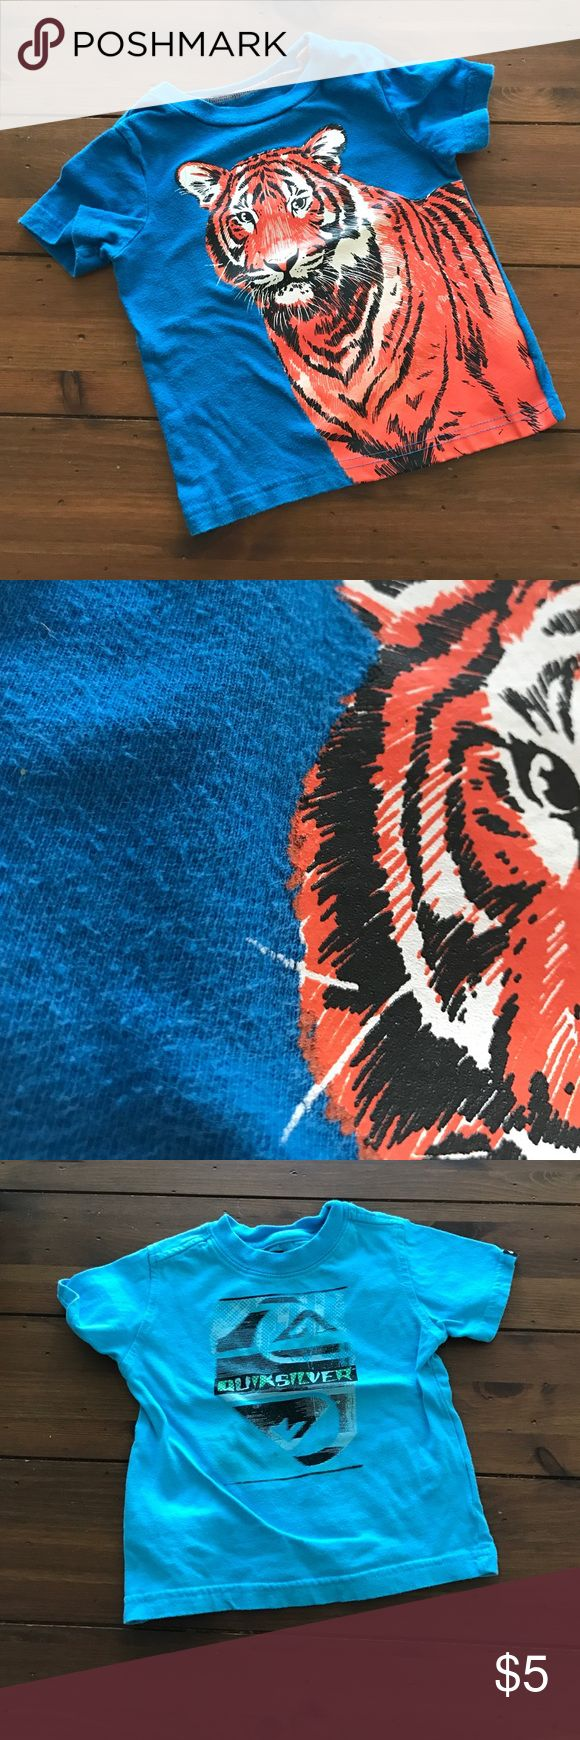 Circo Tiger Graphic and Quiksilver 2T Tee Lot Circo Tiger Graphic and Quiksilver Graphic Tees • Both have same information - Size: 2T • 100% Cotton • Machine Wash • Very Good Condition: Just some pitting on Tees - no stains, rips or holes! Quiksilver Shirts & Tops Tees - Short Sleeve